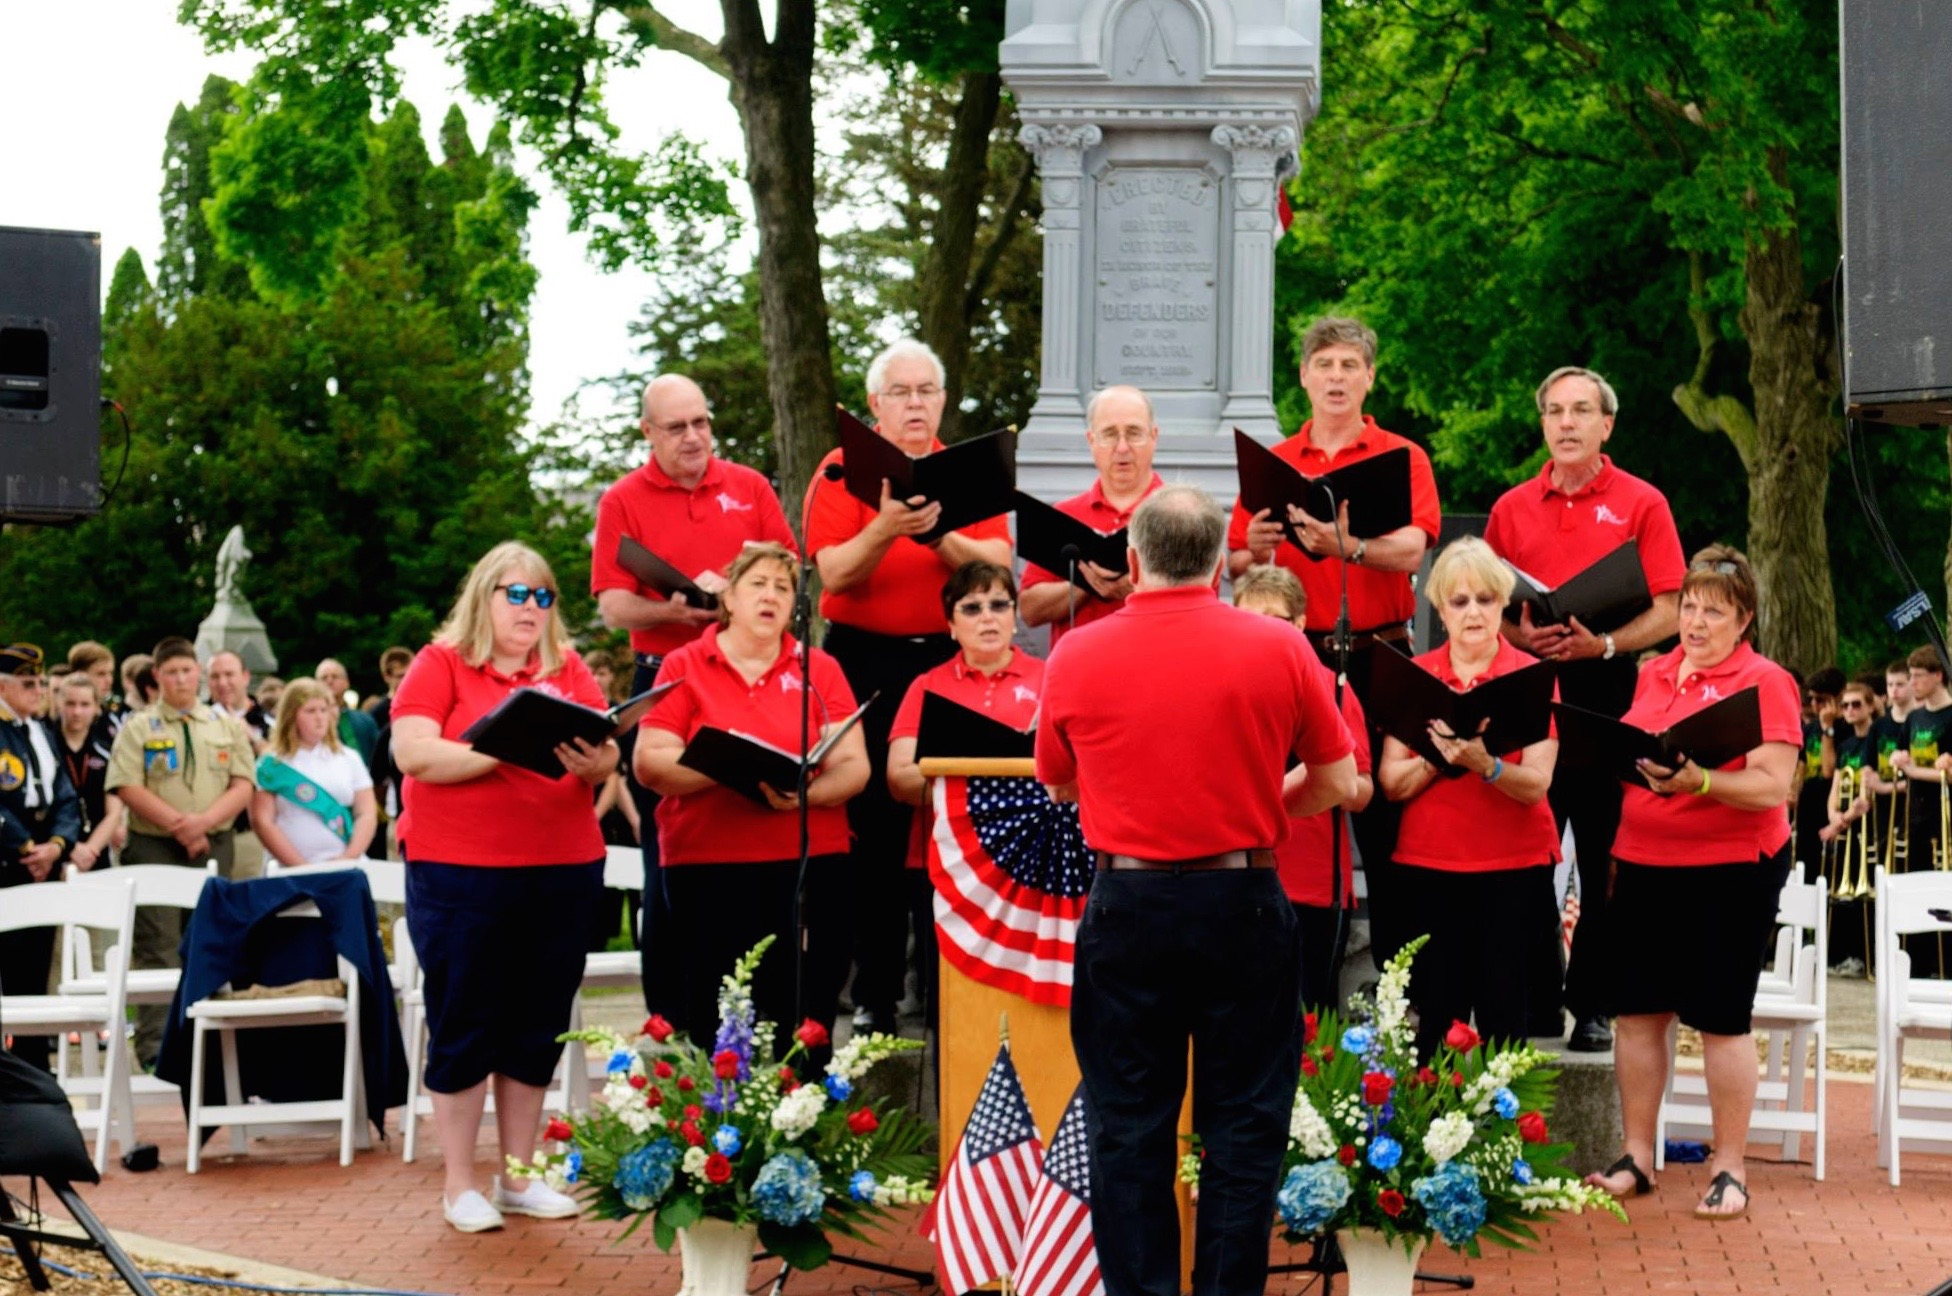 Viva Voce at Memorial Day Ceremony